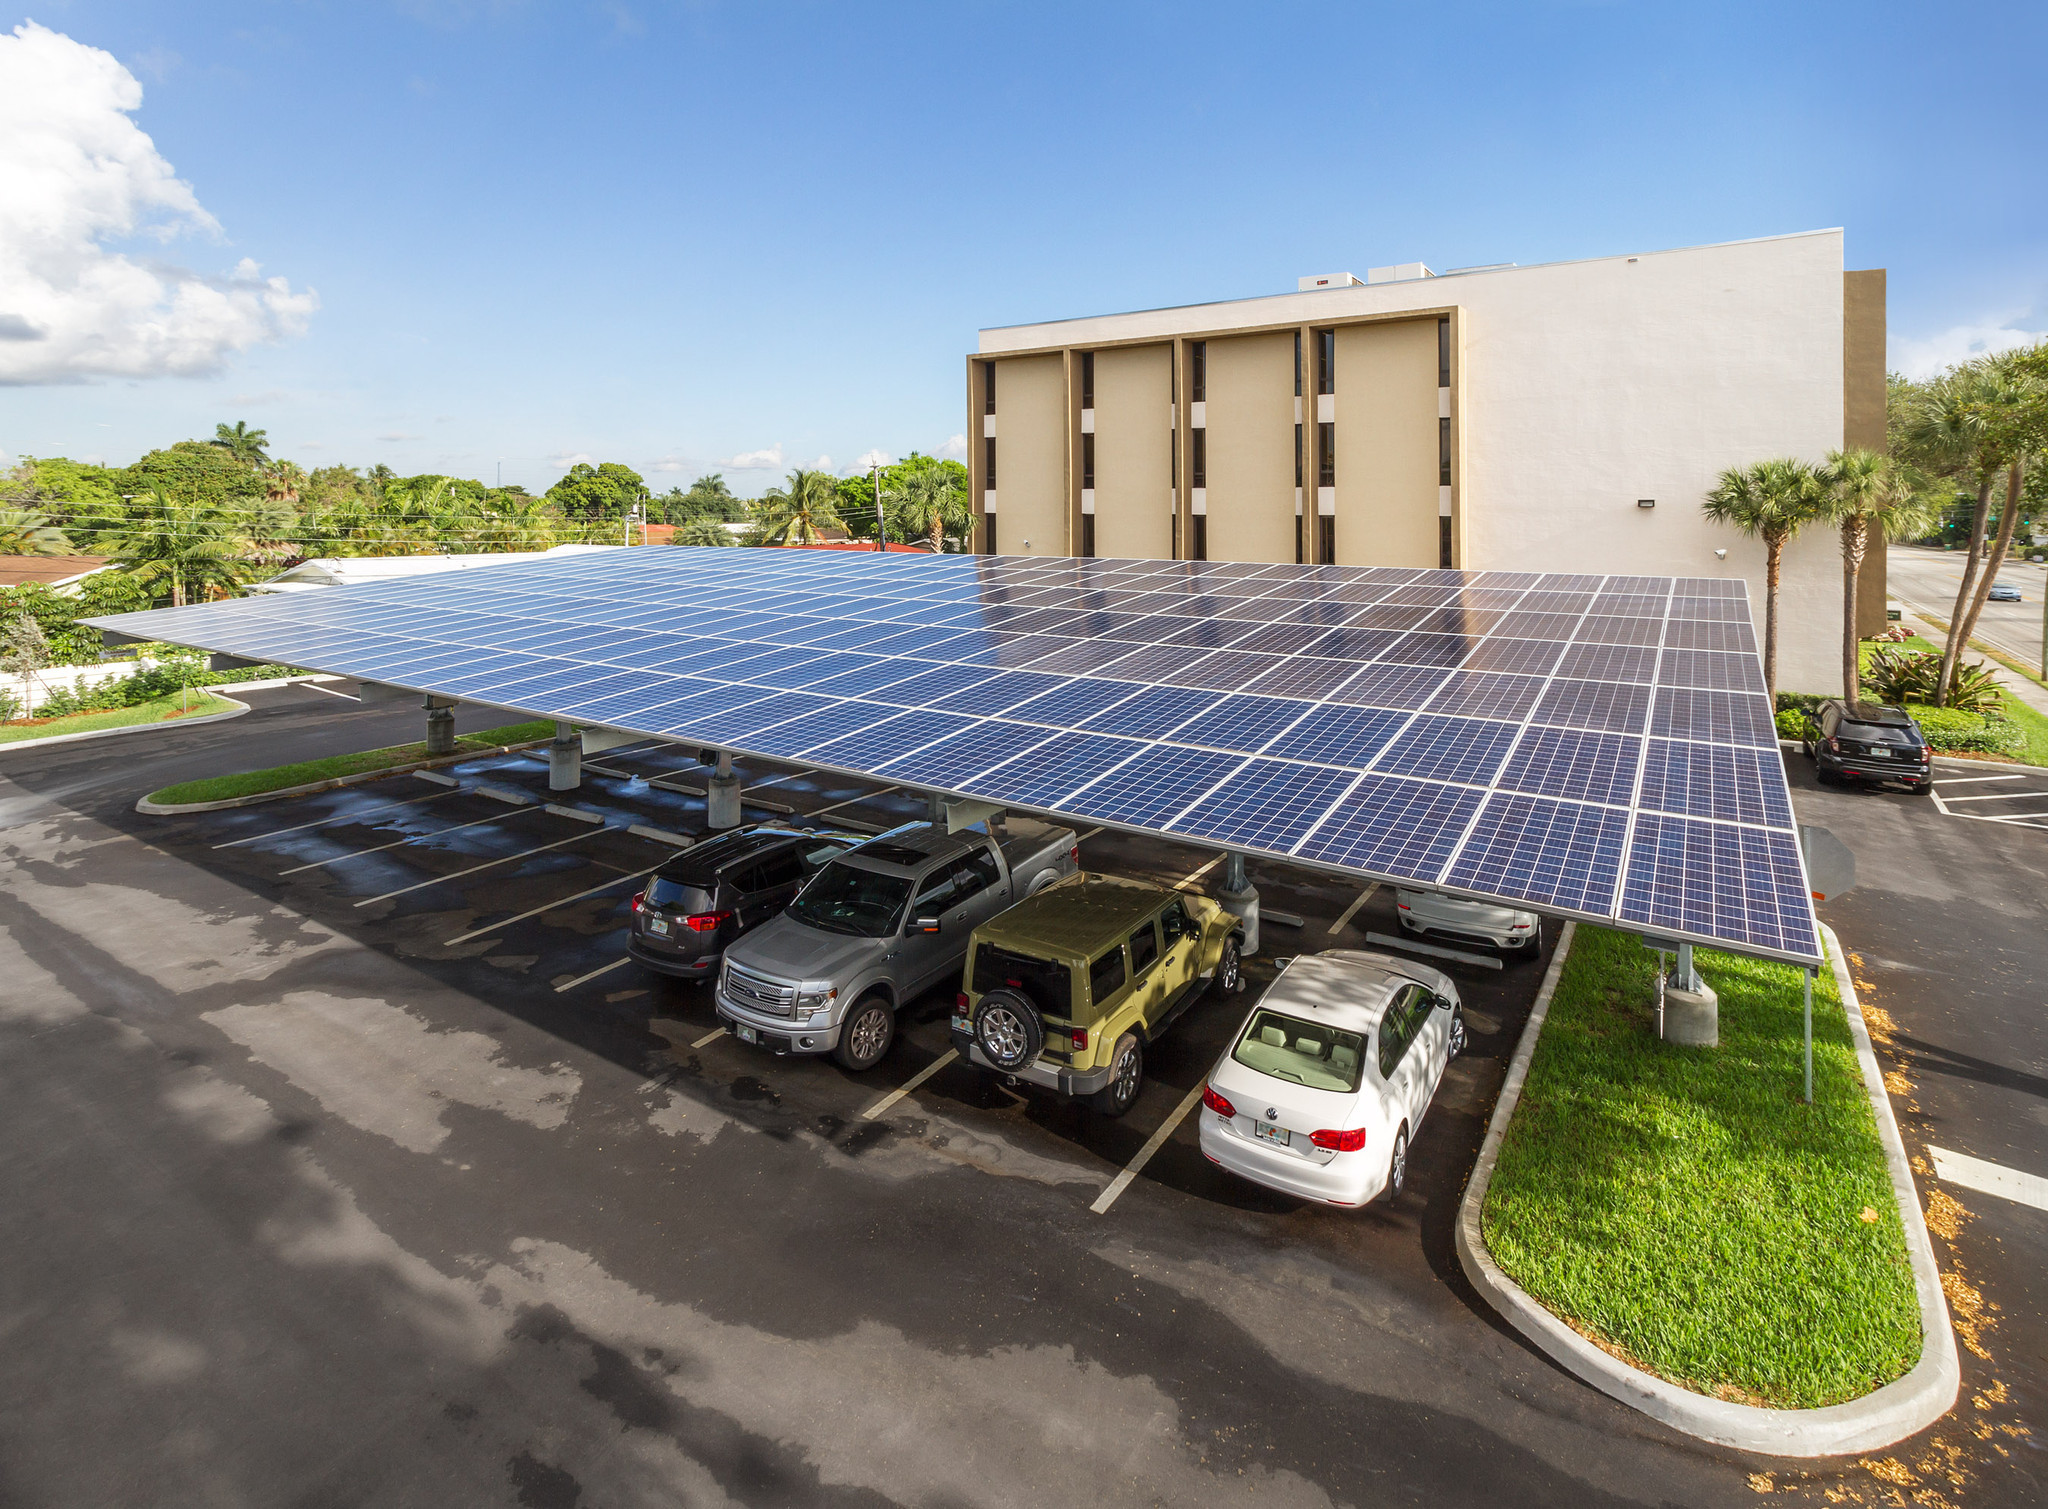 Building Company Moss Completes Solar Panel Parking Canopy